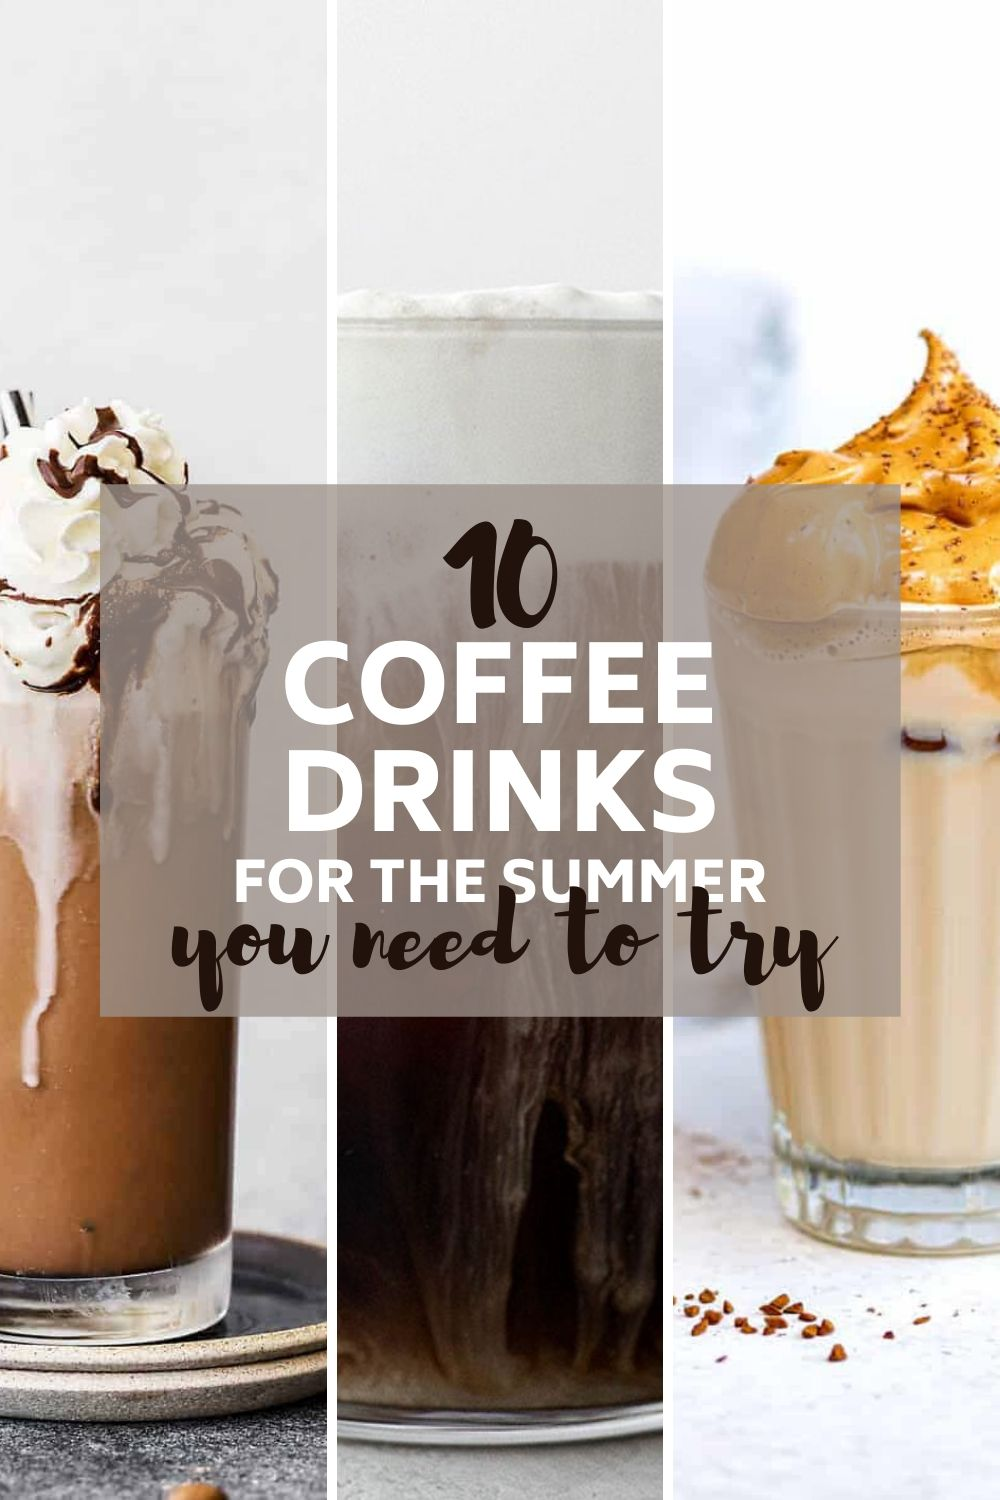 Iced Coffee Drinks you need to try this summer!